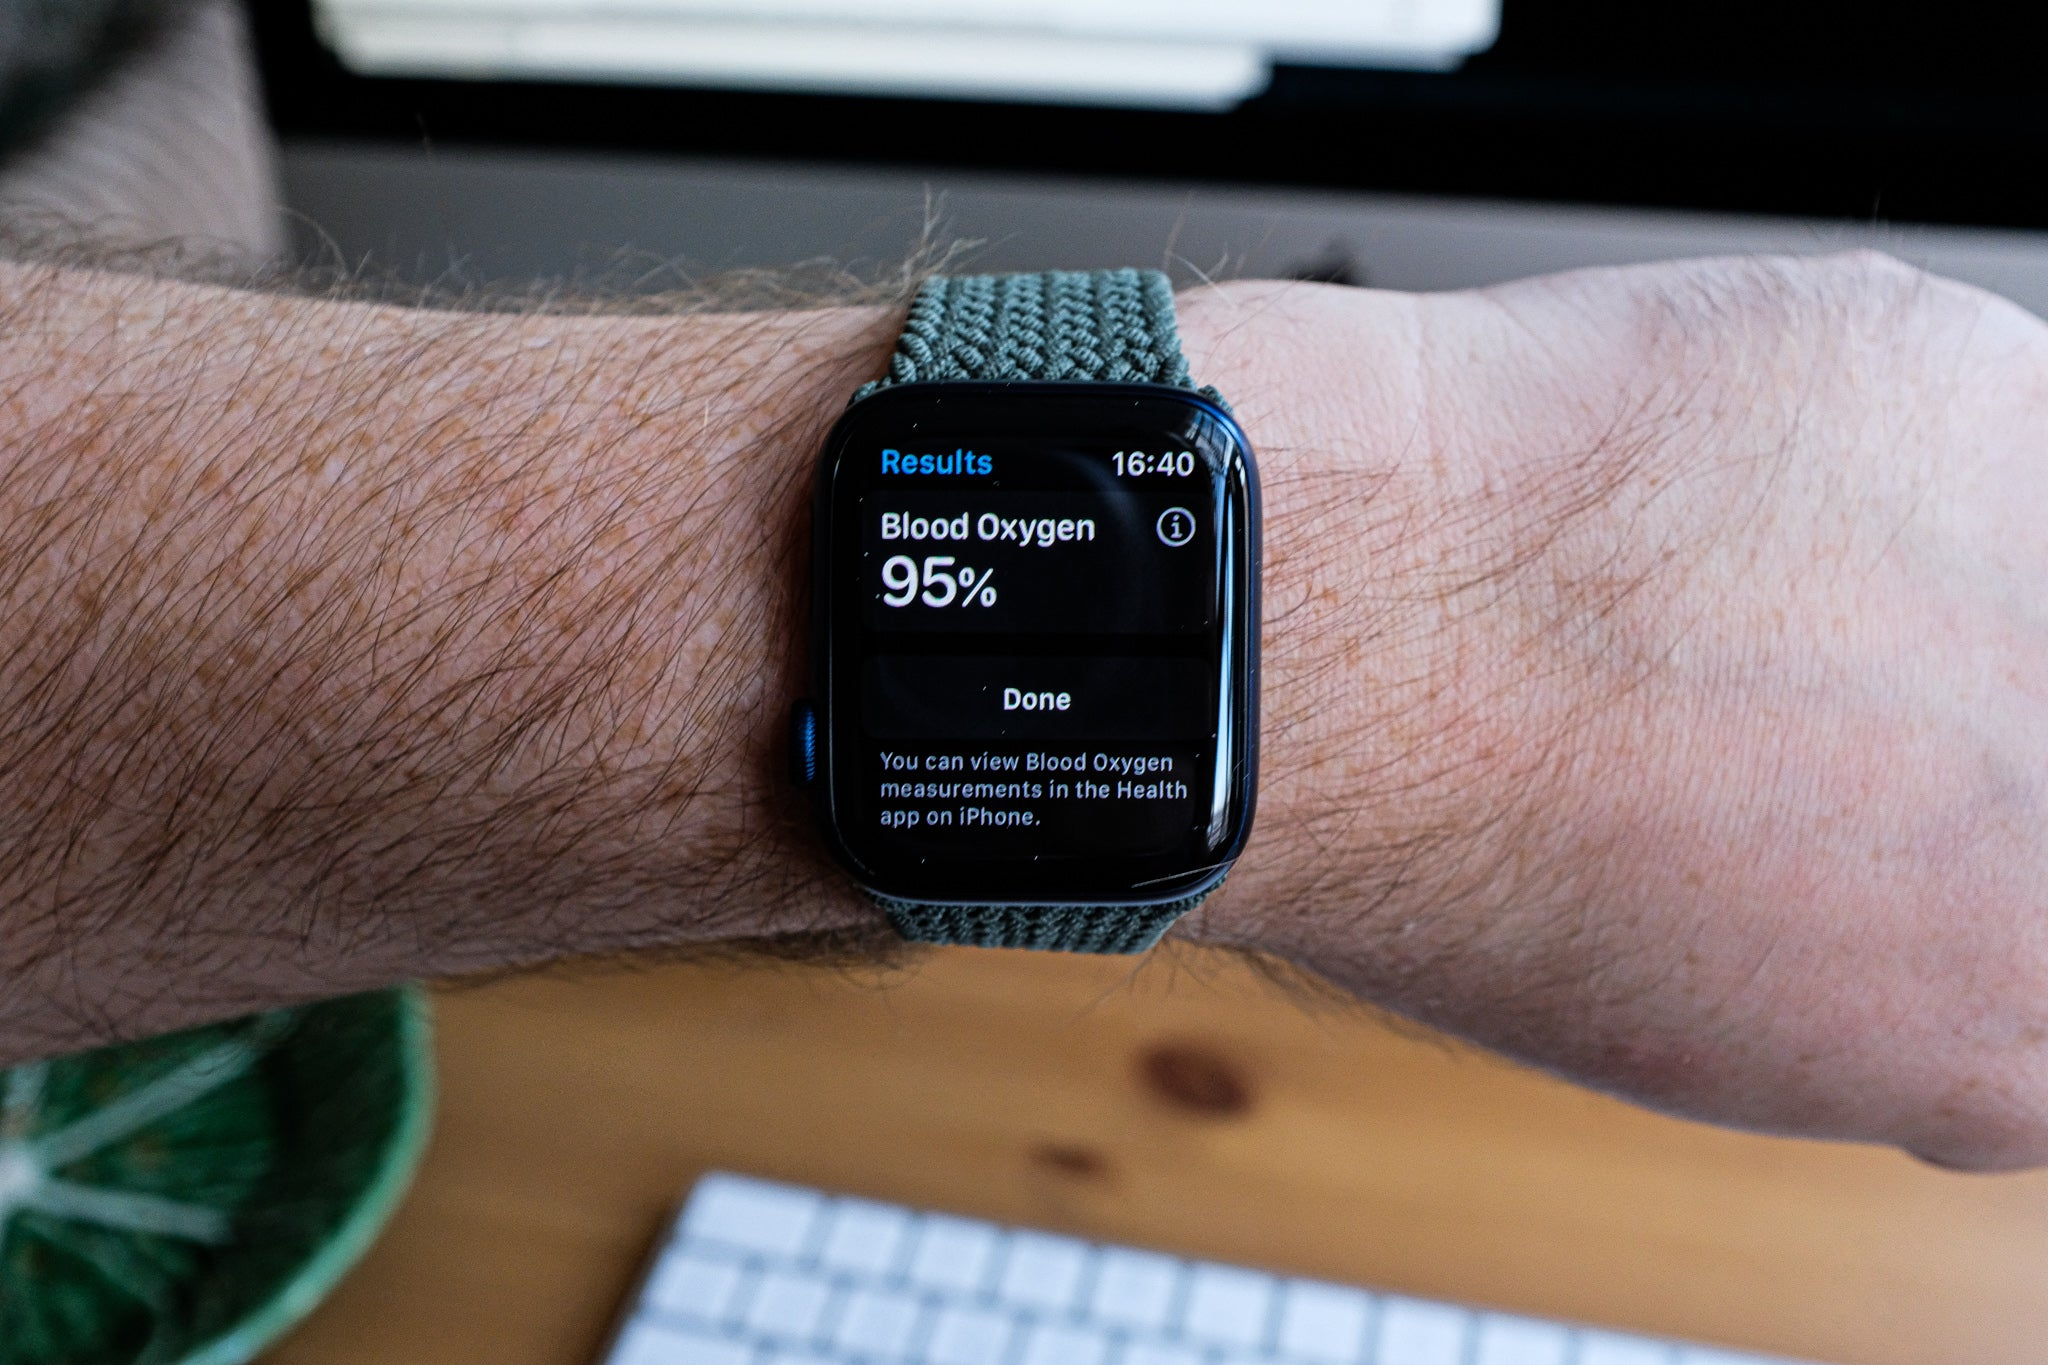 Apple Watch could detect Covid-19 days before symptoms show – study | Trusted Reviews